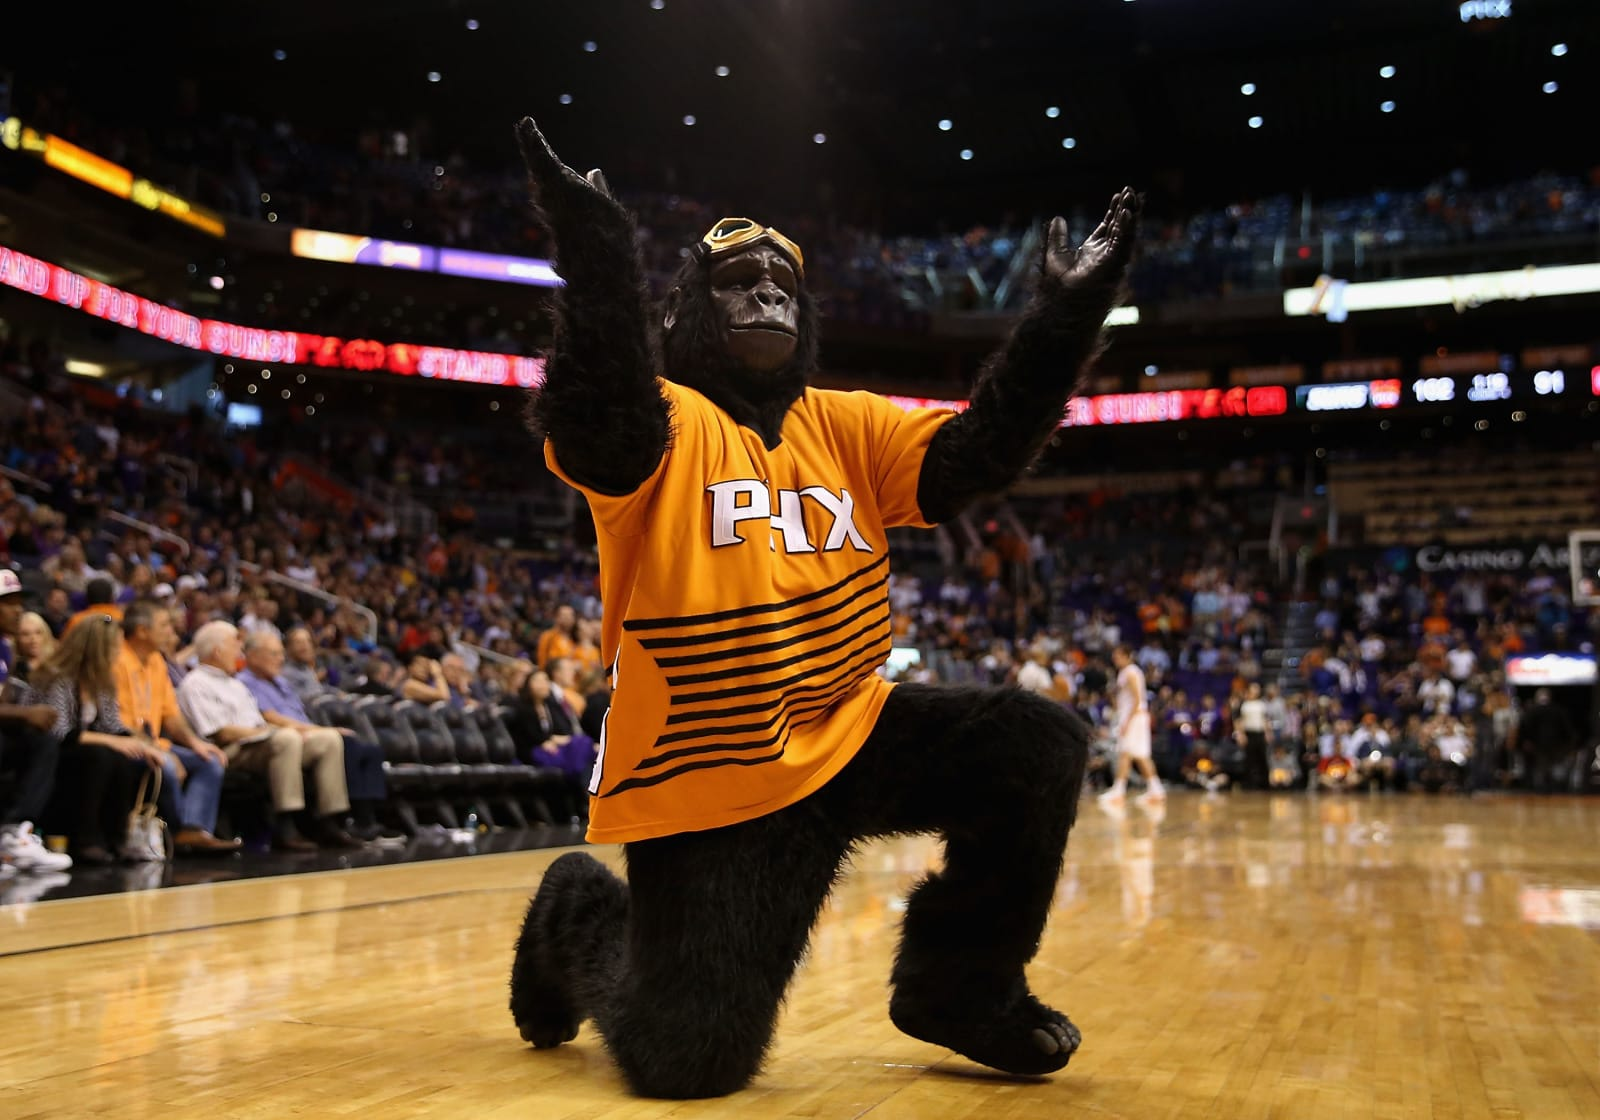 Phoenix Suns (Photo by Christian Petersen/Getty Images)